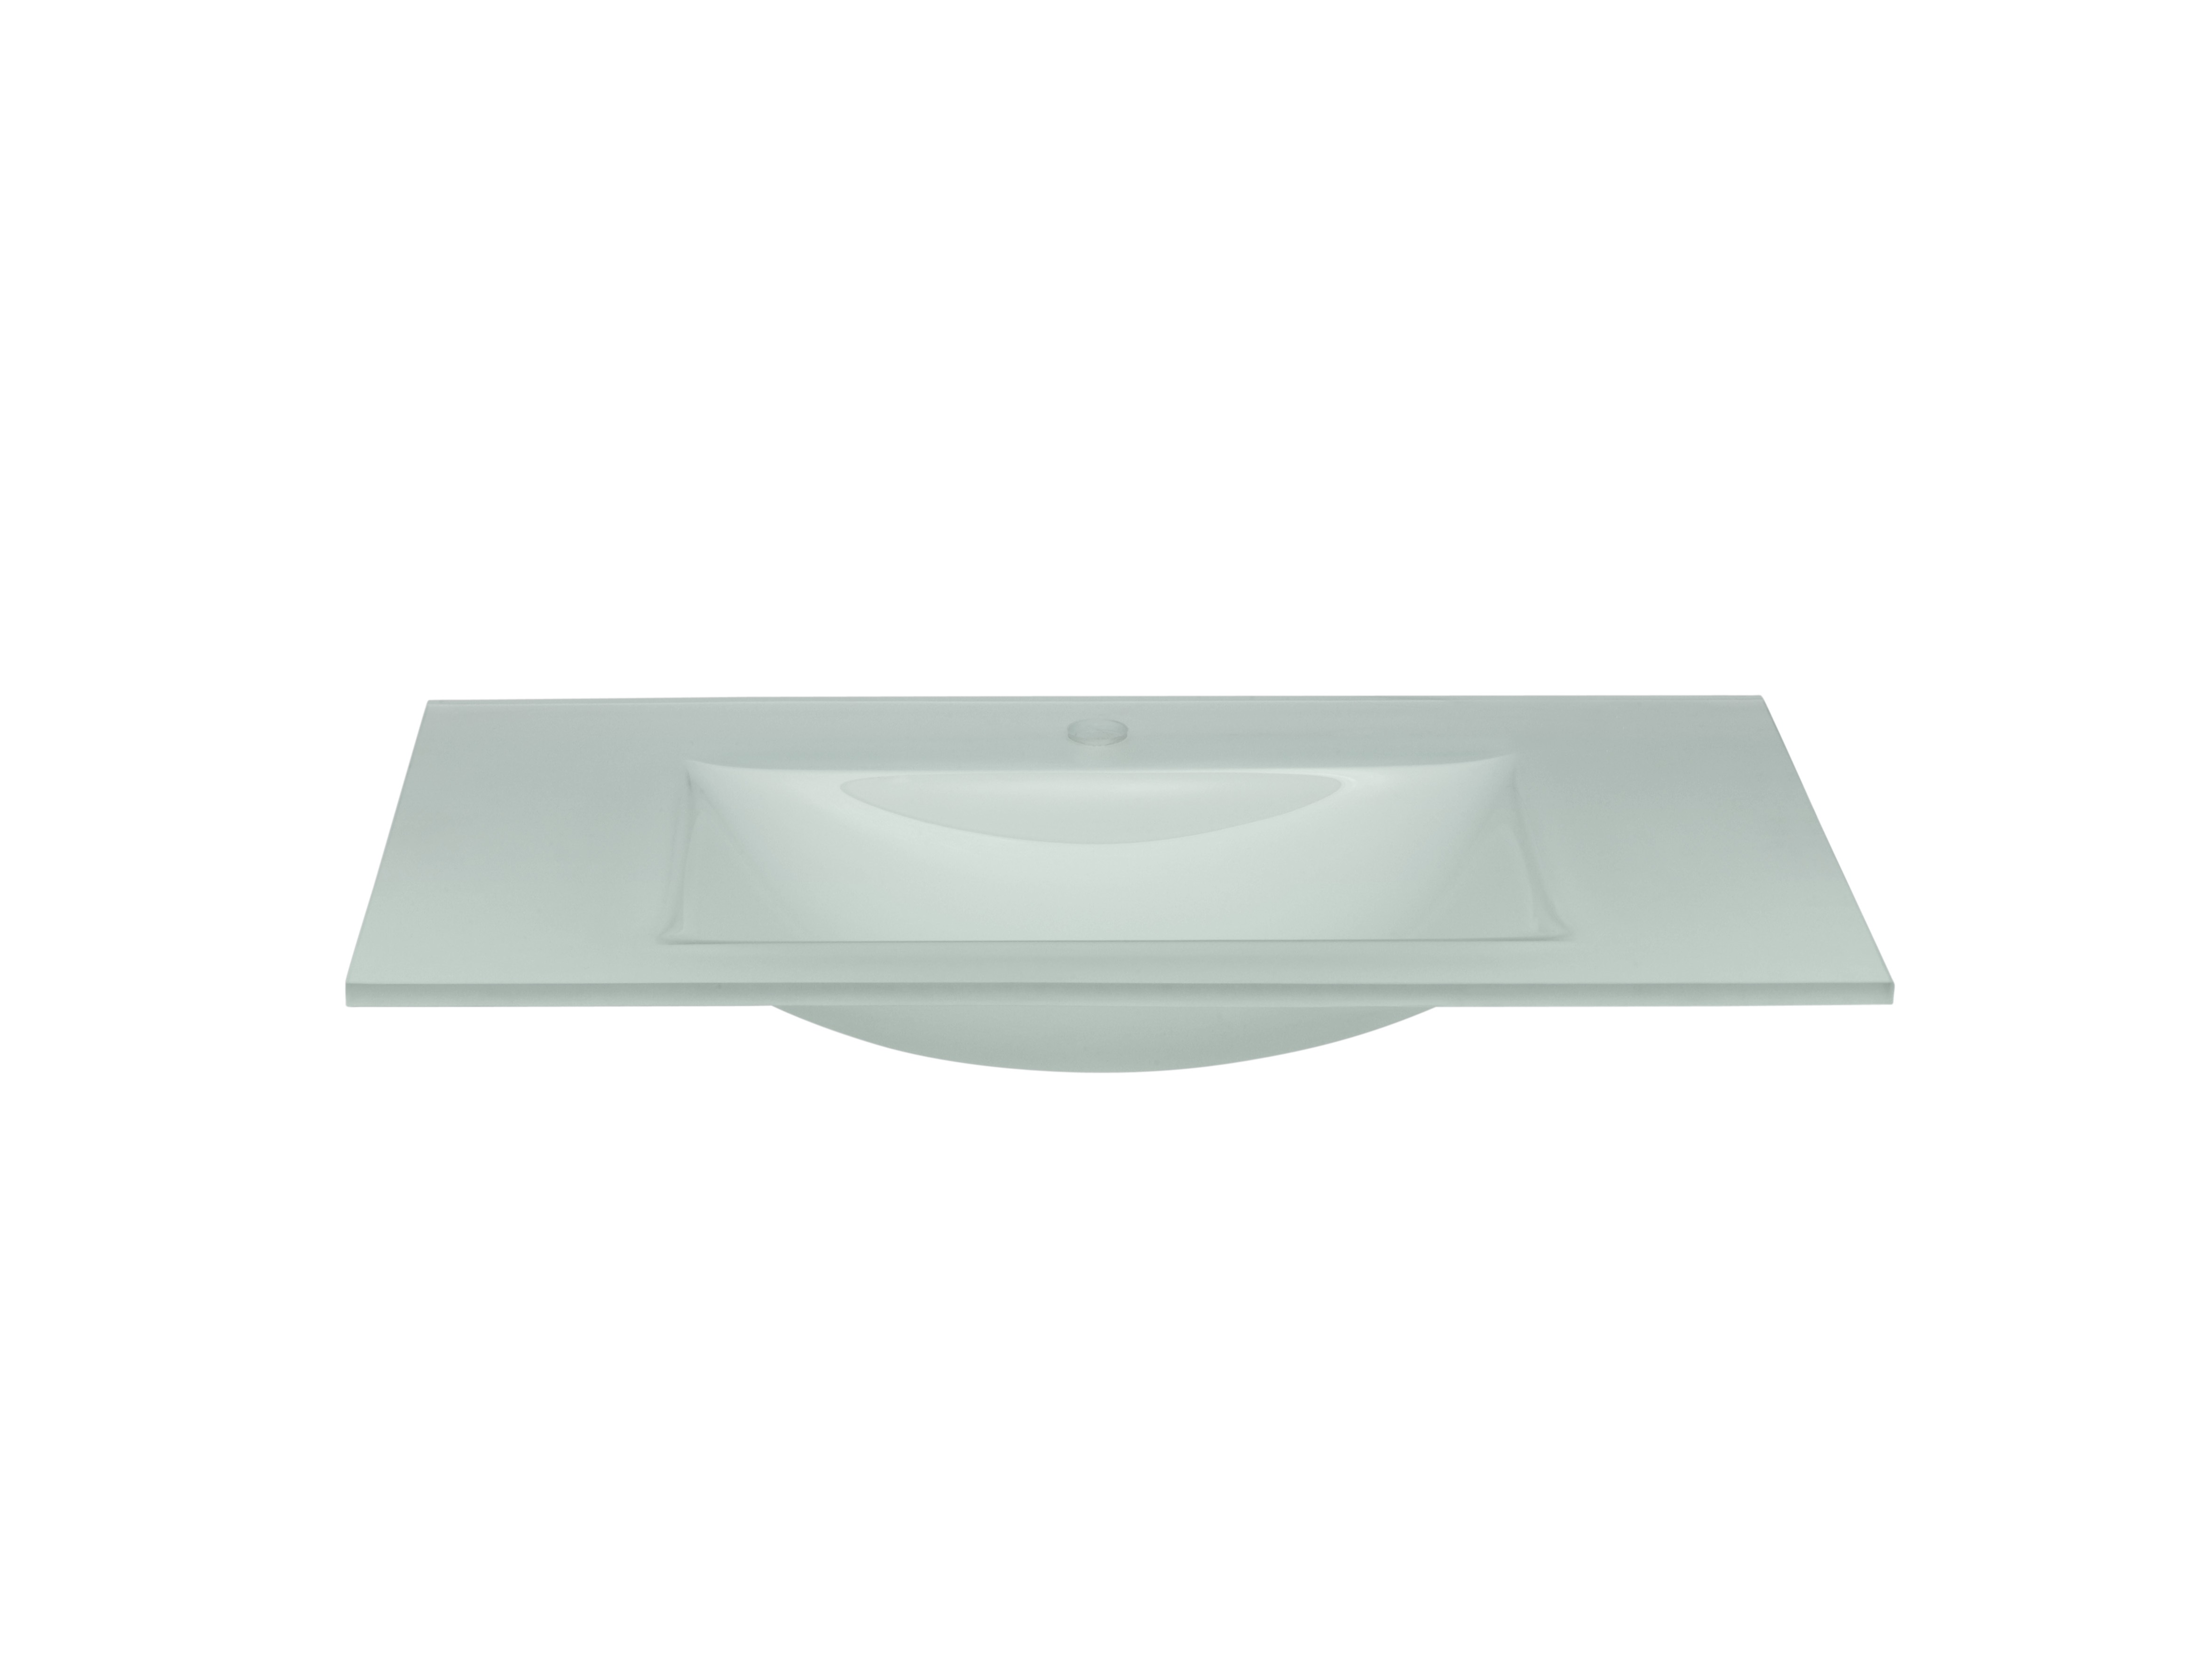 "Ronbow 37"" Tempered Glass Sinktop with Single Faucet Hole in Obscure Glass"